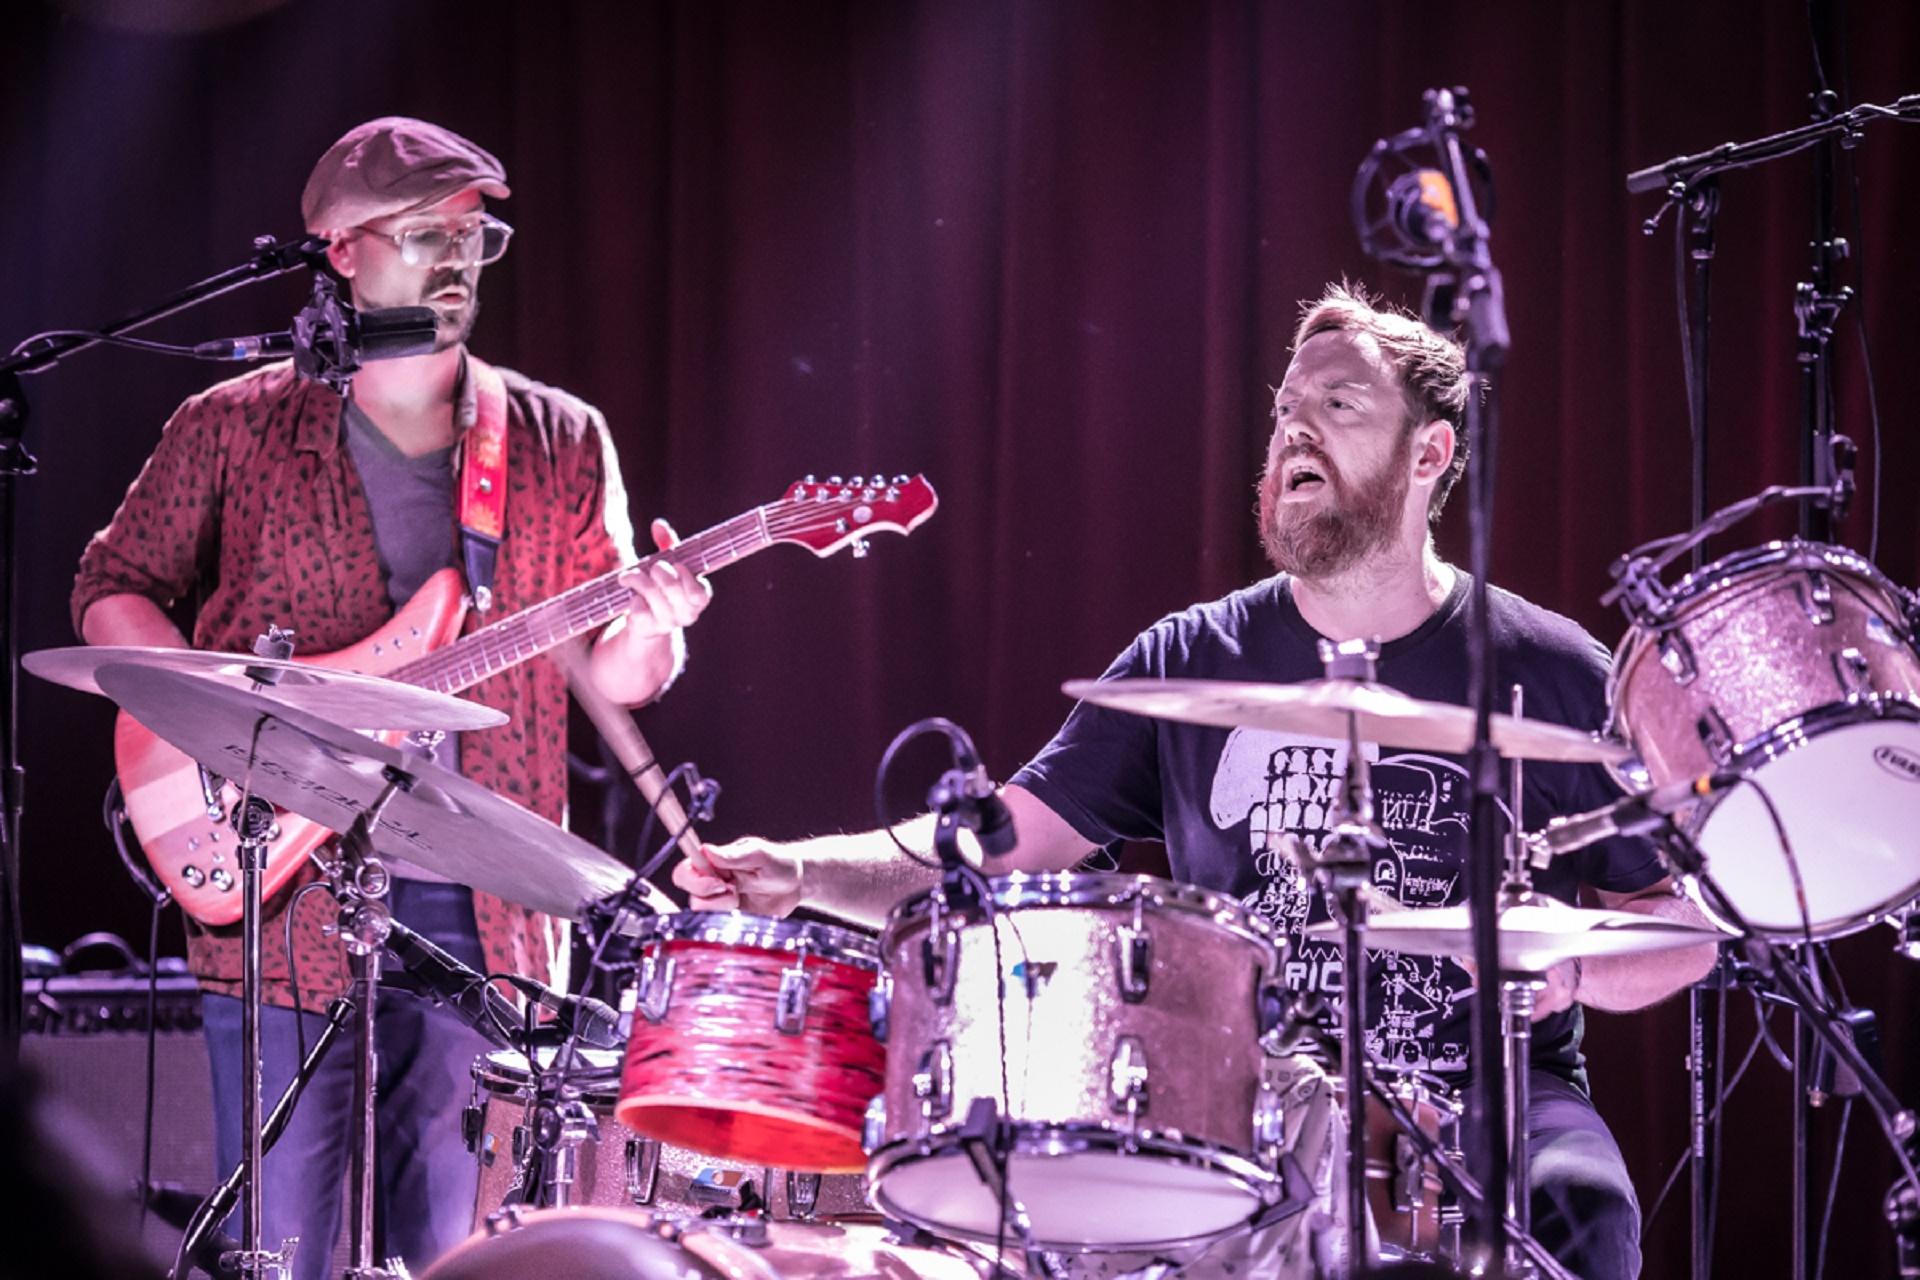 Joe Russo's Almost Dead | Brookyln Bowl | 10/6/17 | Review